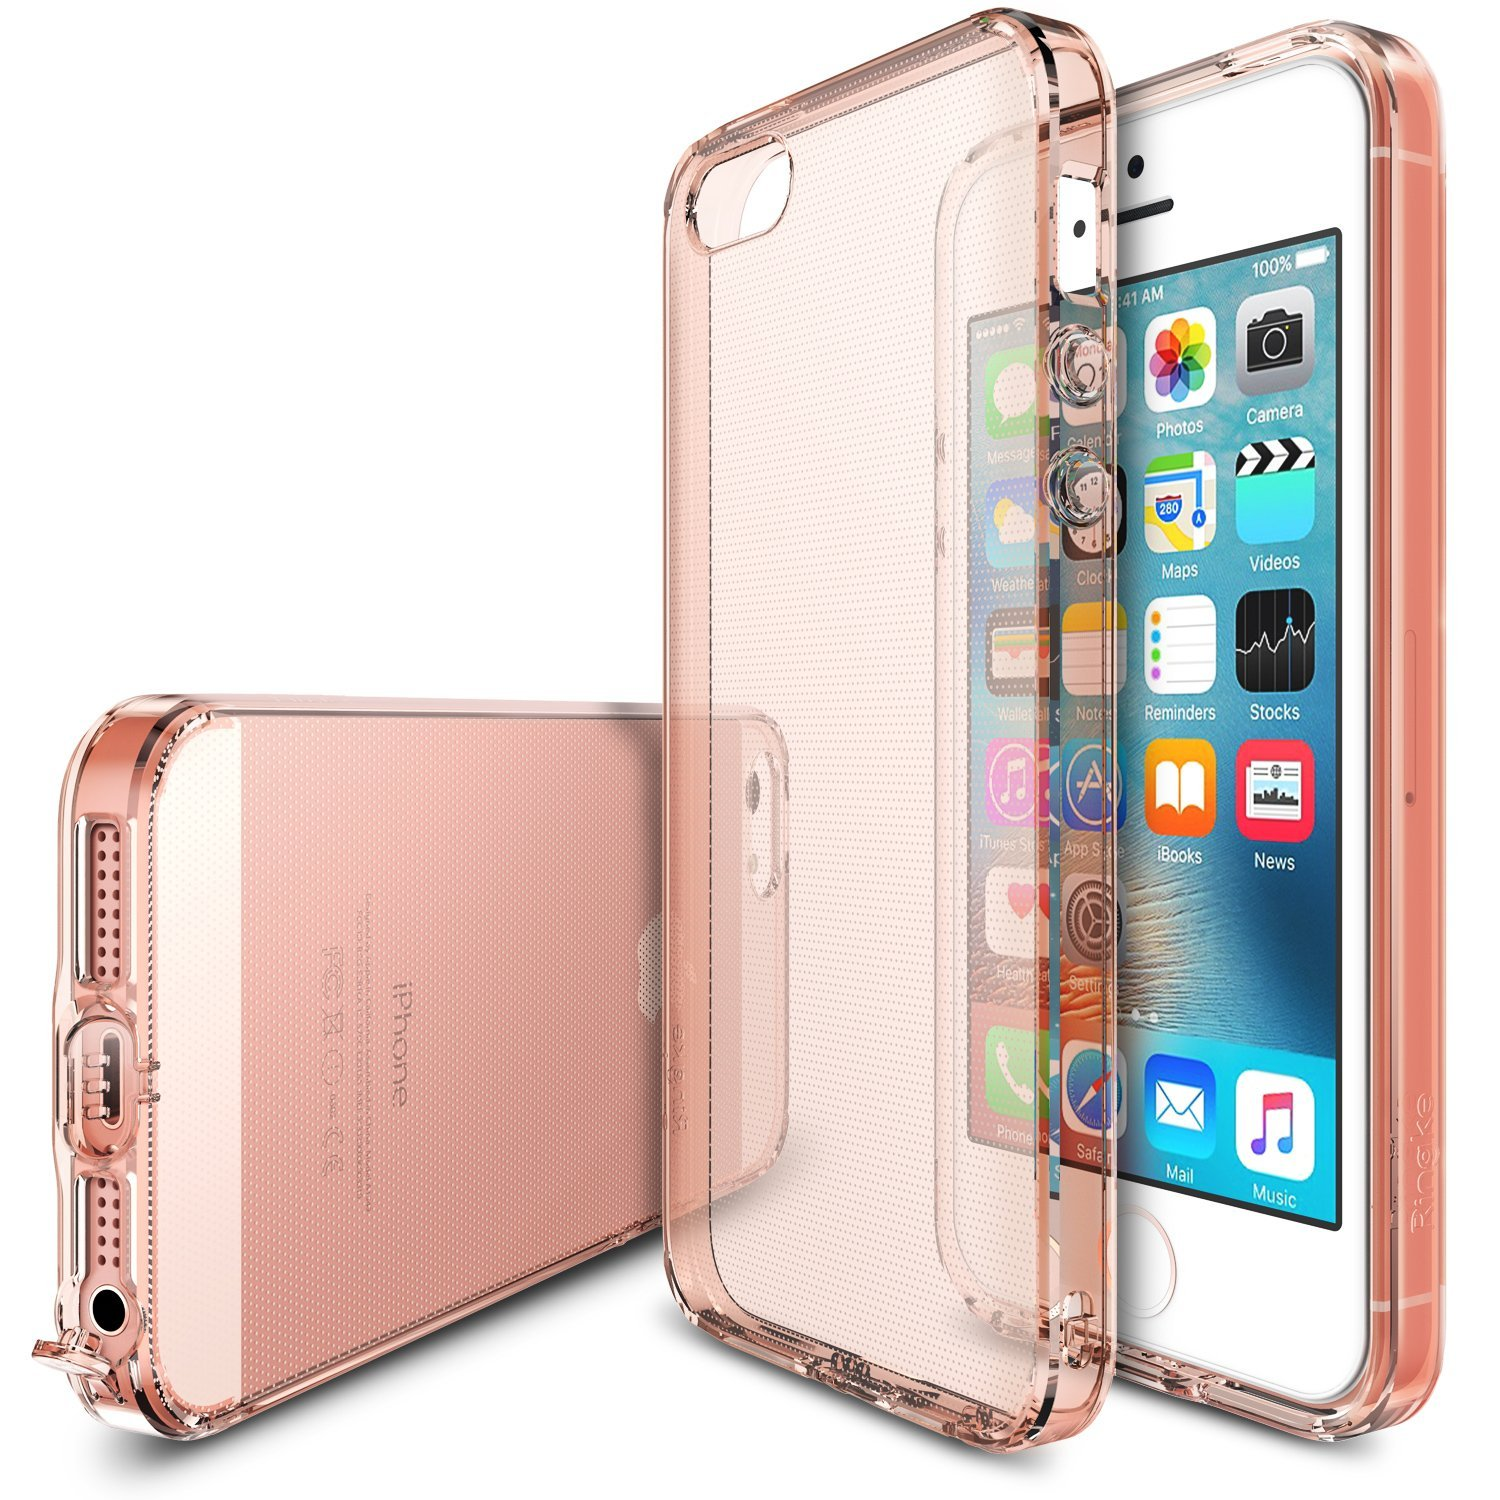 Apple iPhone SE / 5 / 5S Case, Ringke [Rose Gold Crystal] AIR Series Extreme Lightweight Ultra-Thin Flexible TPU Case